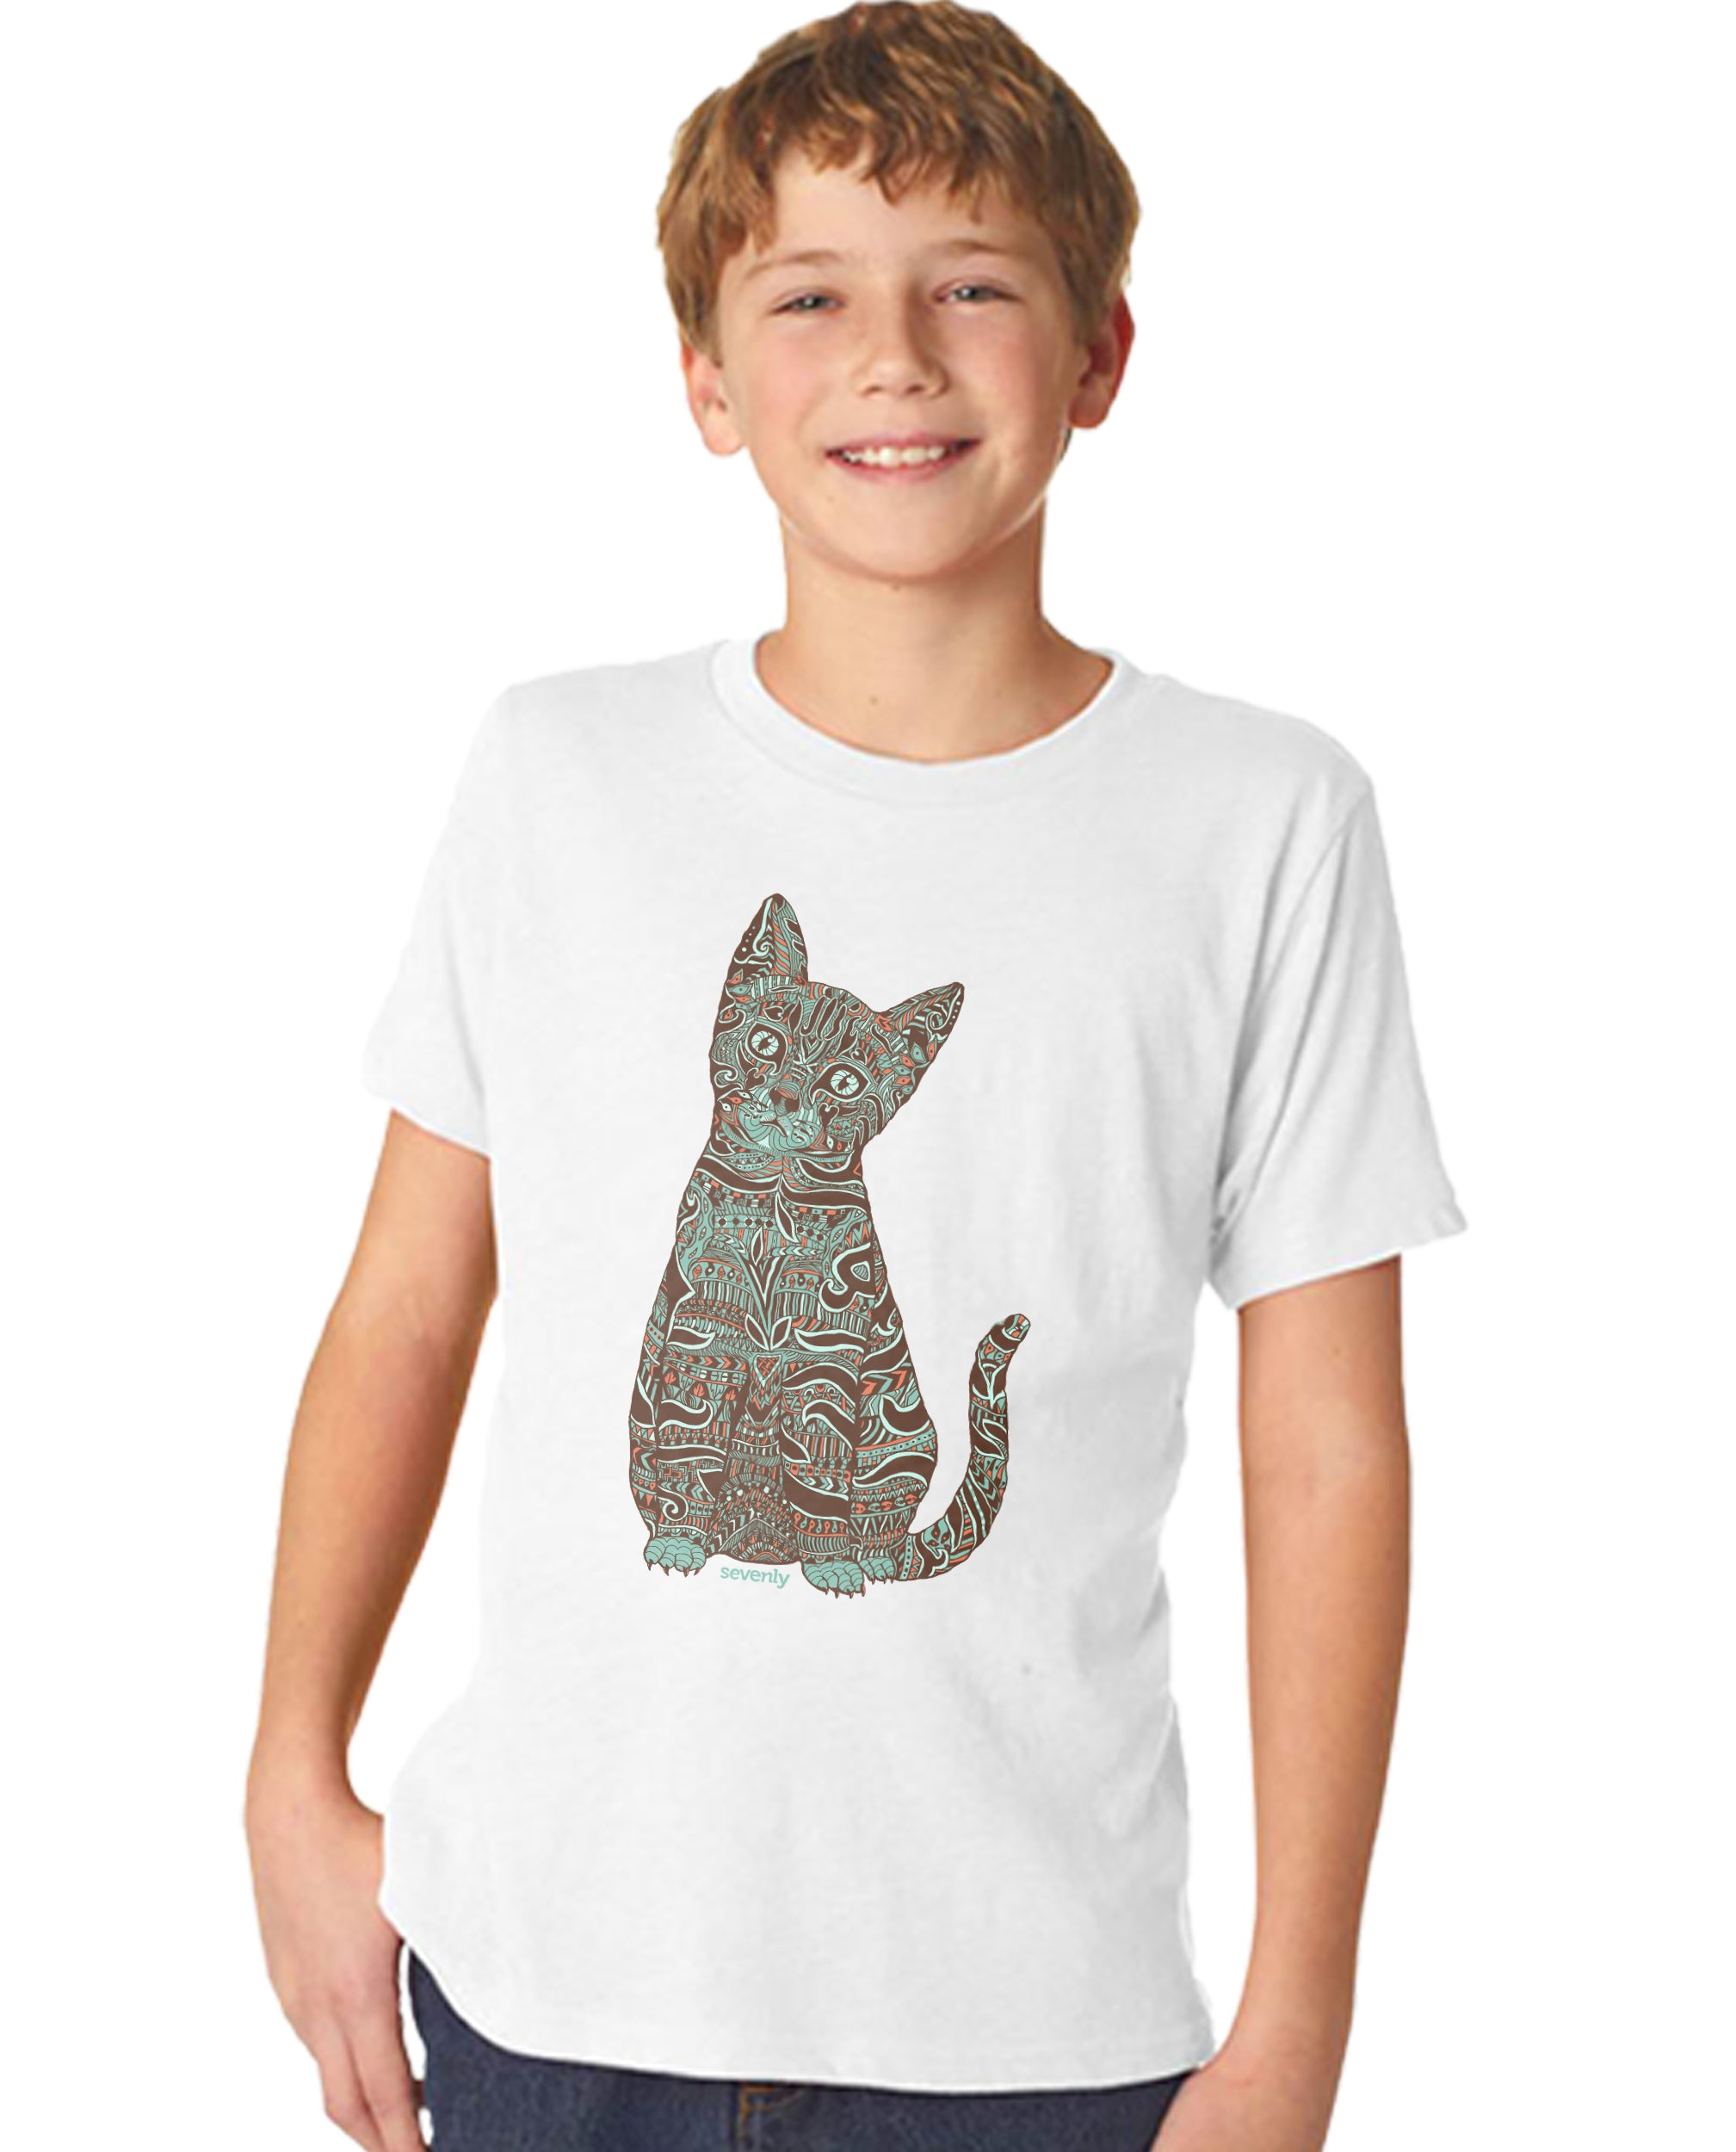 Henna Cat Boy's Premium Short Sleeve Crew